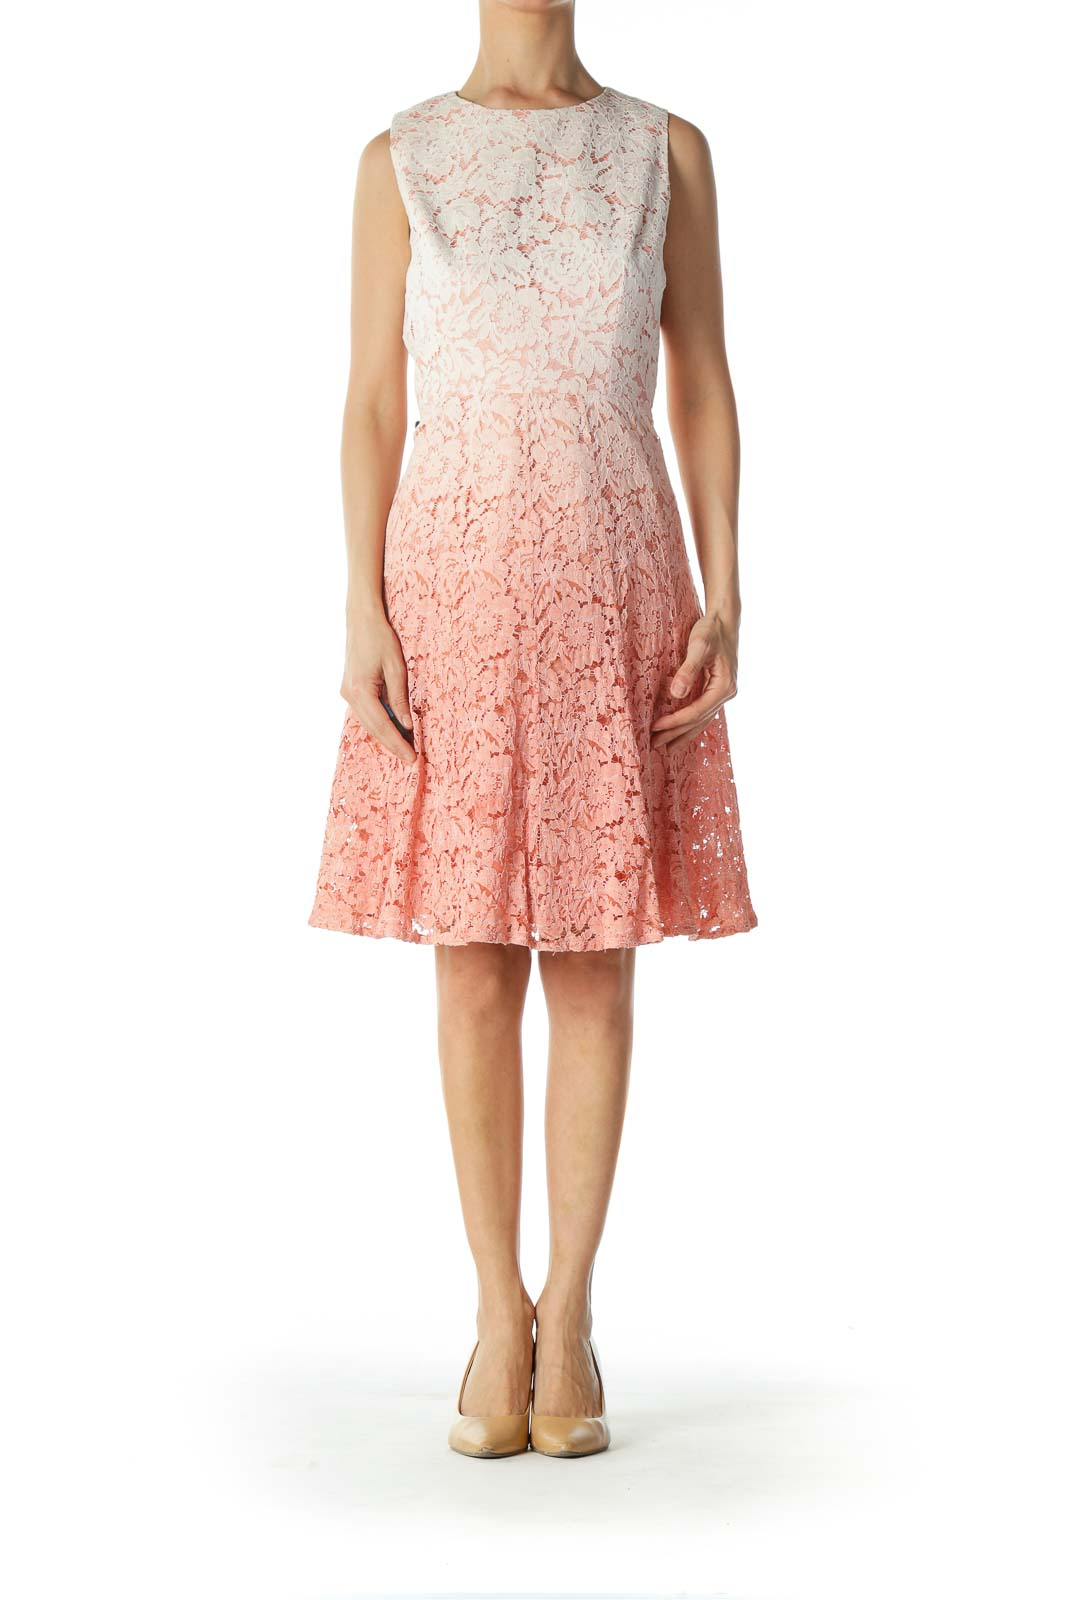 Pink and White Ombre Eyelet Dress